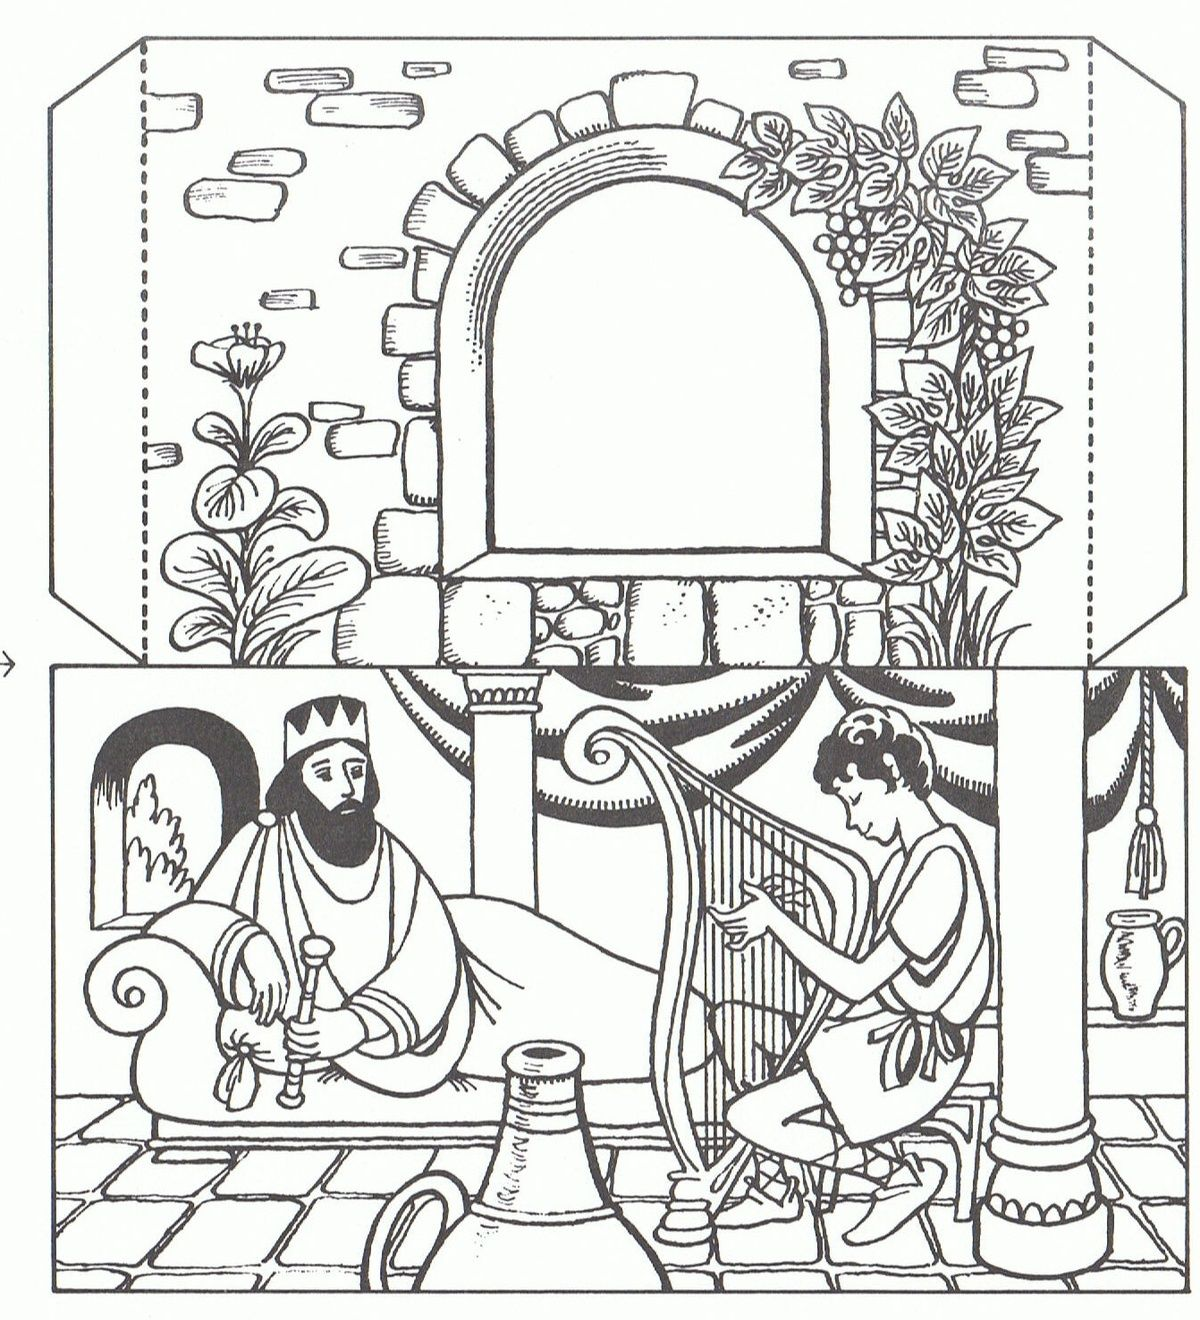 1b4e75000bd173748b10618b89238410 Jpg 1 200 1 320 Pixels Bible Crafts David And Saul Bible Coloring Pages